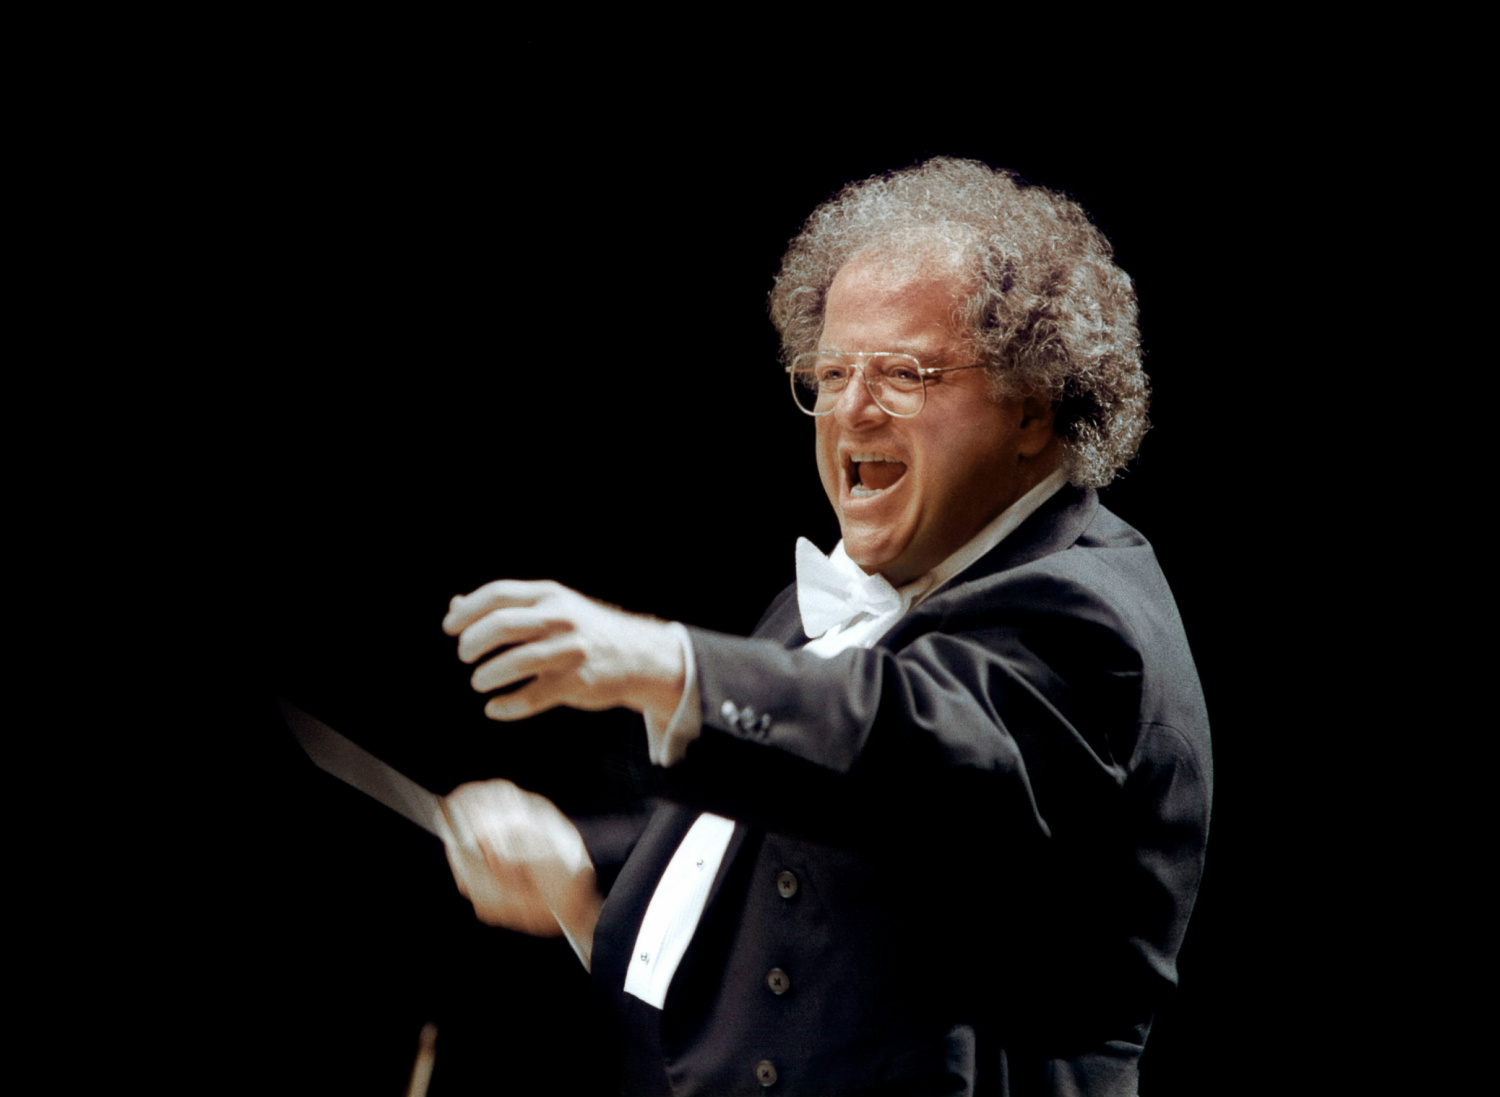 Who Is James Levine? Metropolitan Opera To Investigate New York City Conductor